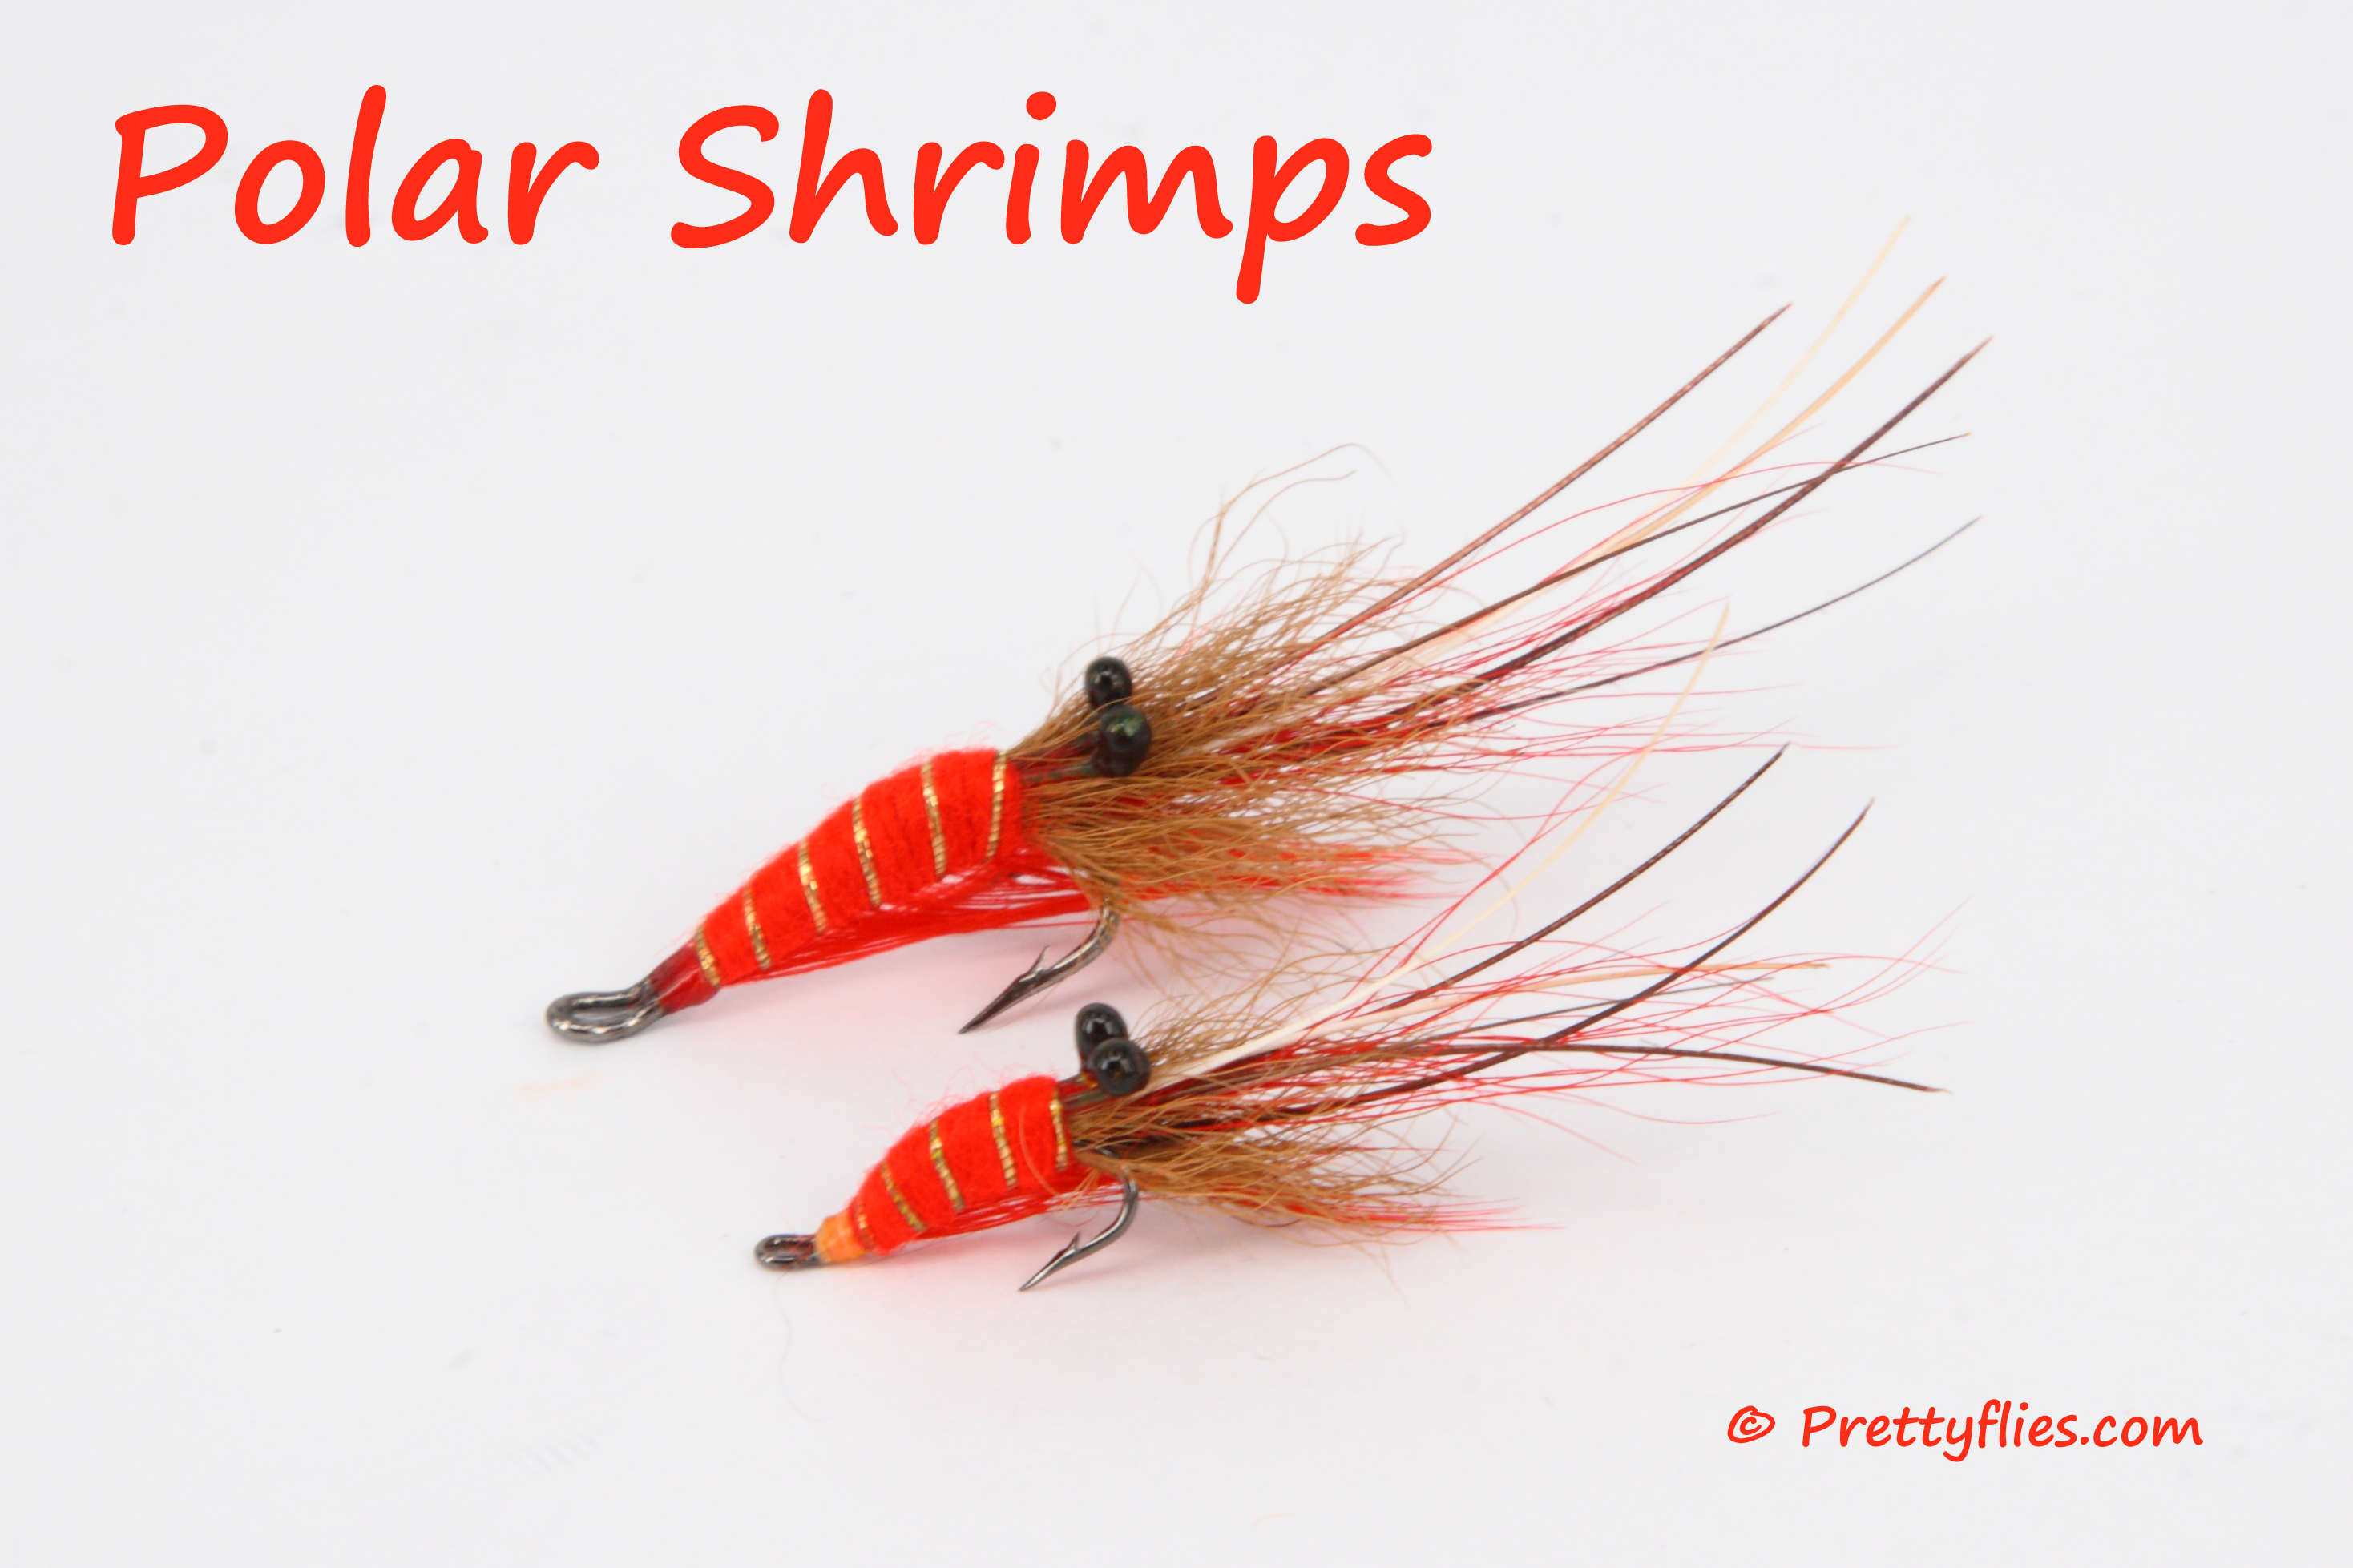 Polar Shrimps copy.jpg